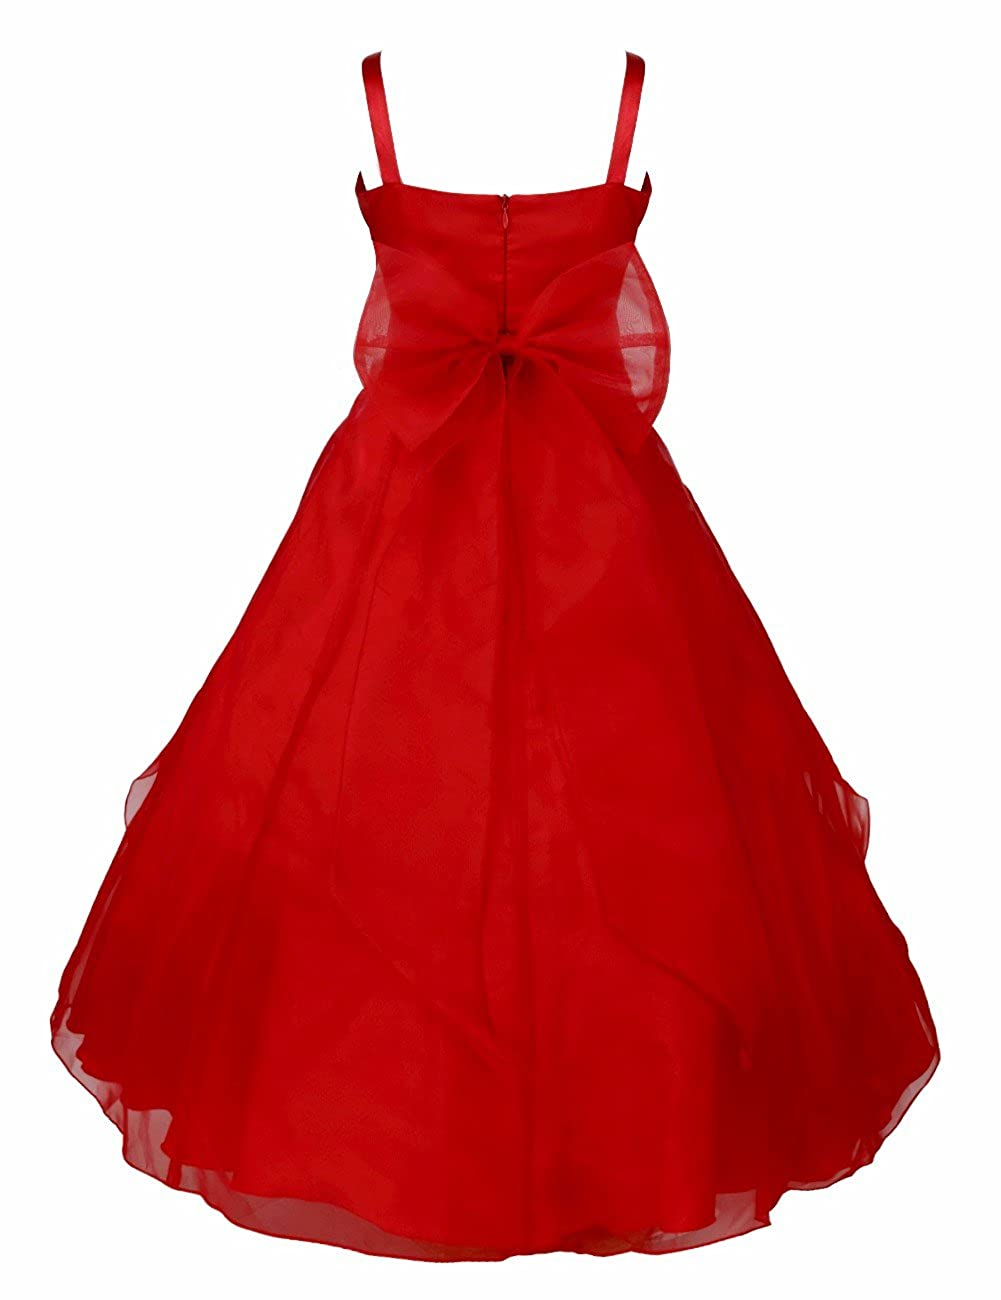 Amazon feeshow kids big girls rhinestone ruffle flower dress amazon feeshow kids big girls rhinestone ruffle flower dress bridesmaid party wedding gown clothing izmirmasajfo